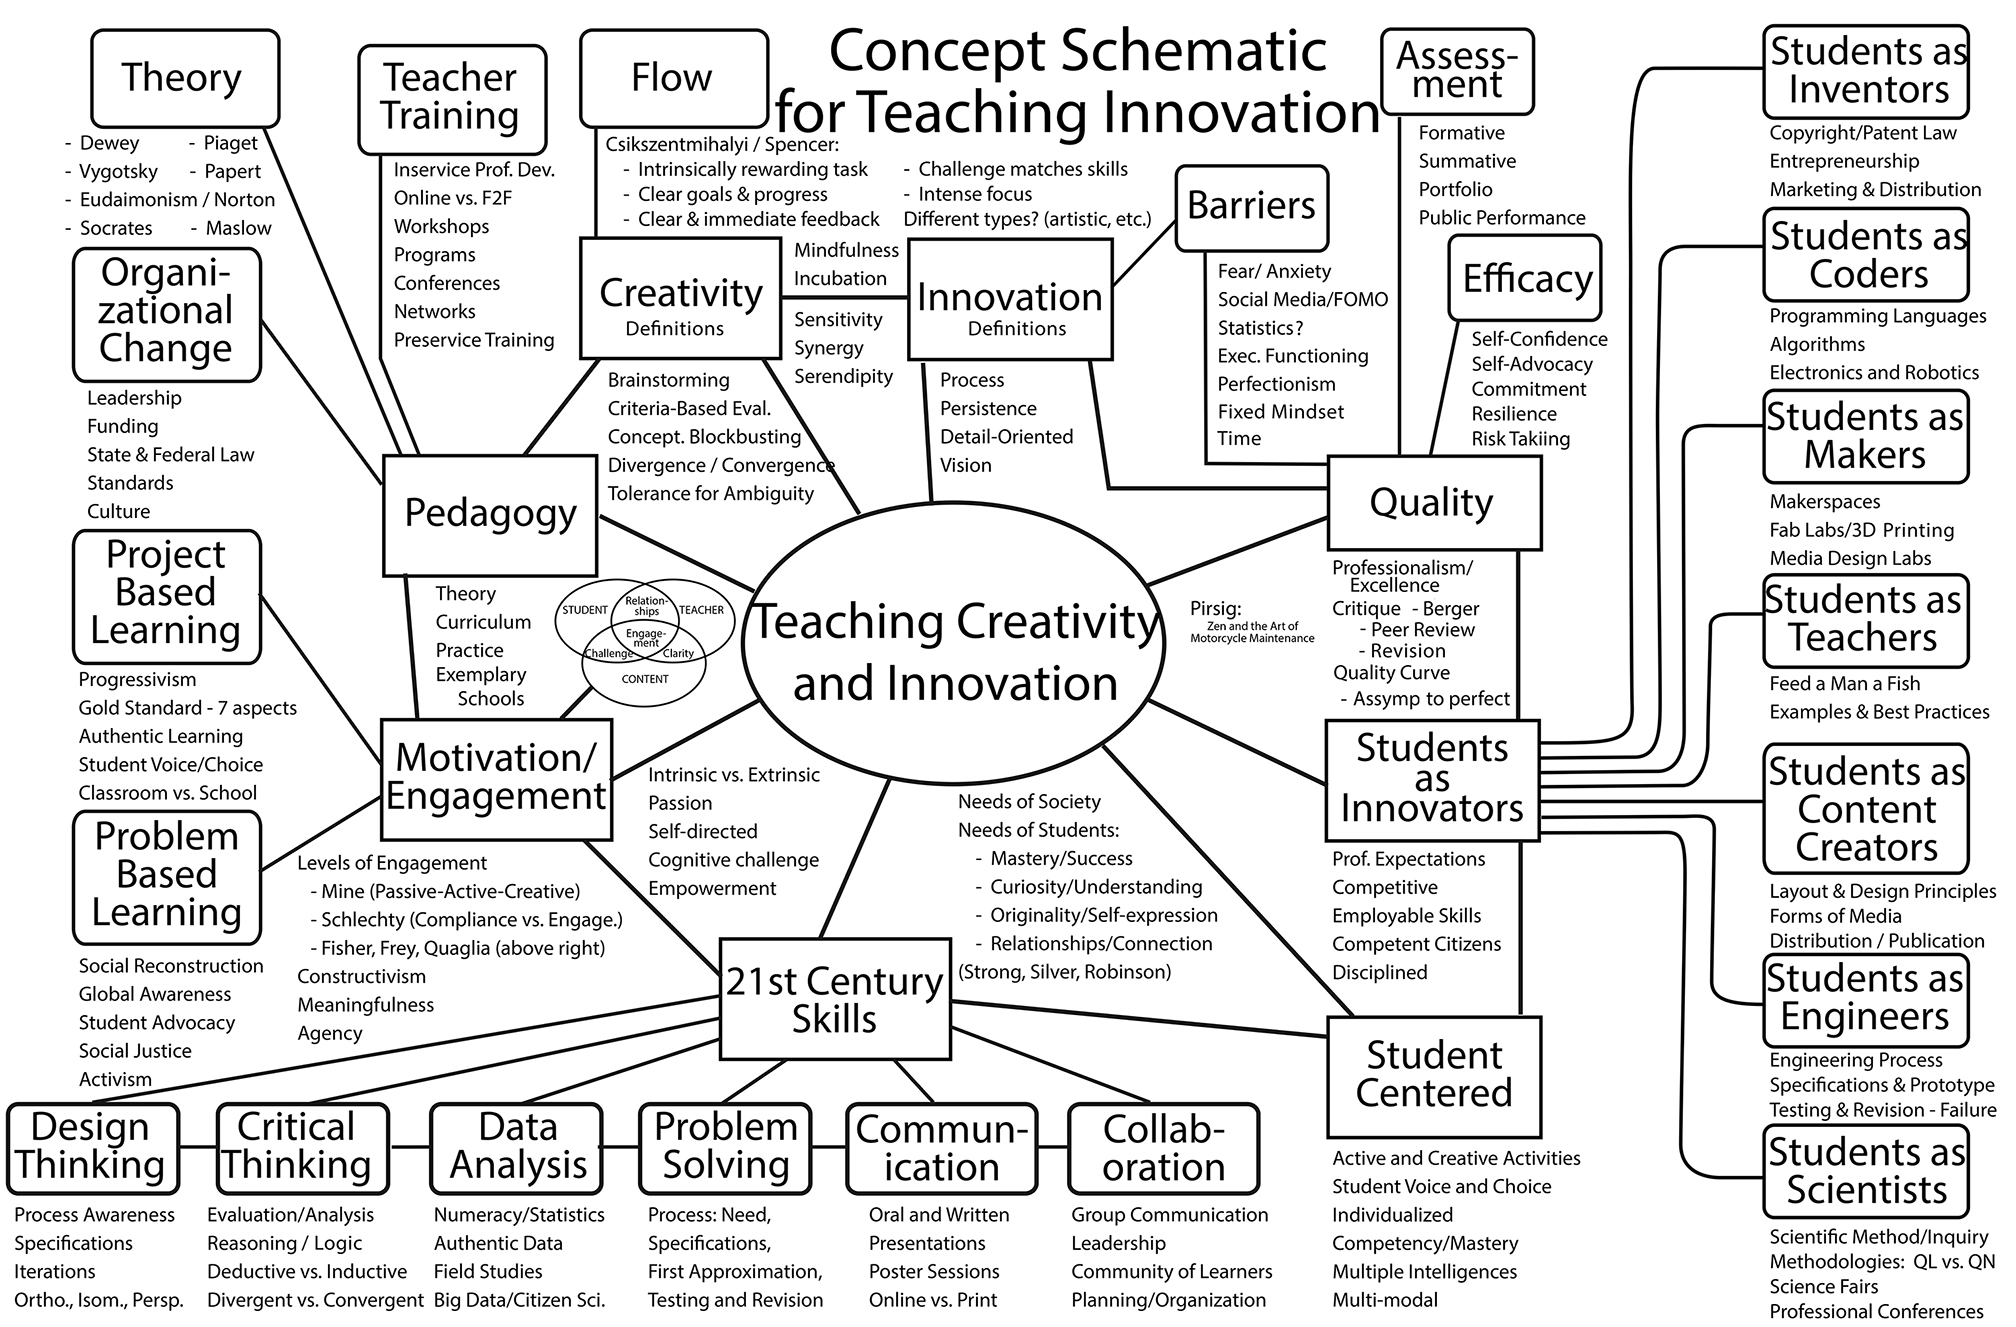 Creativity and Innovation schematic